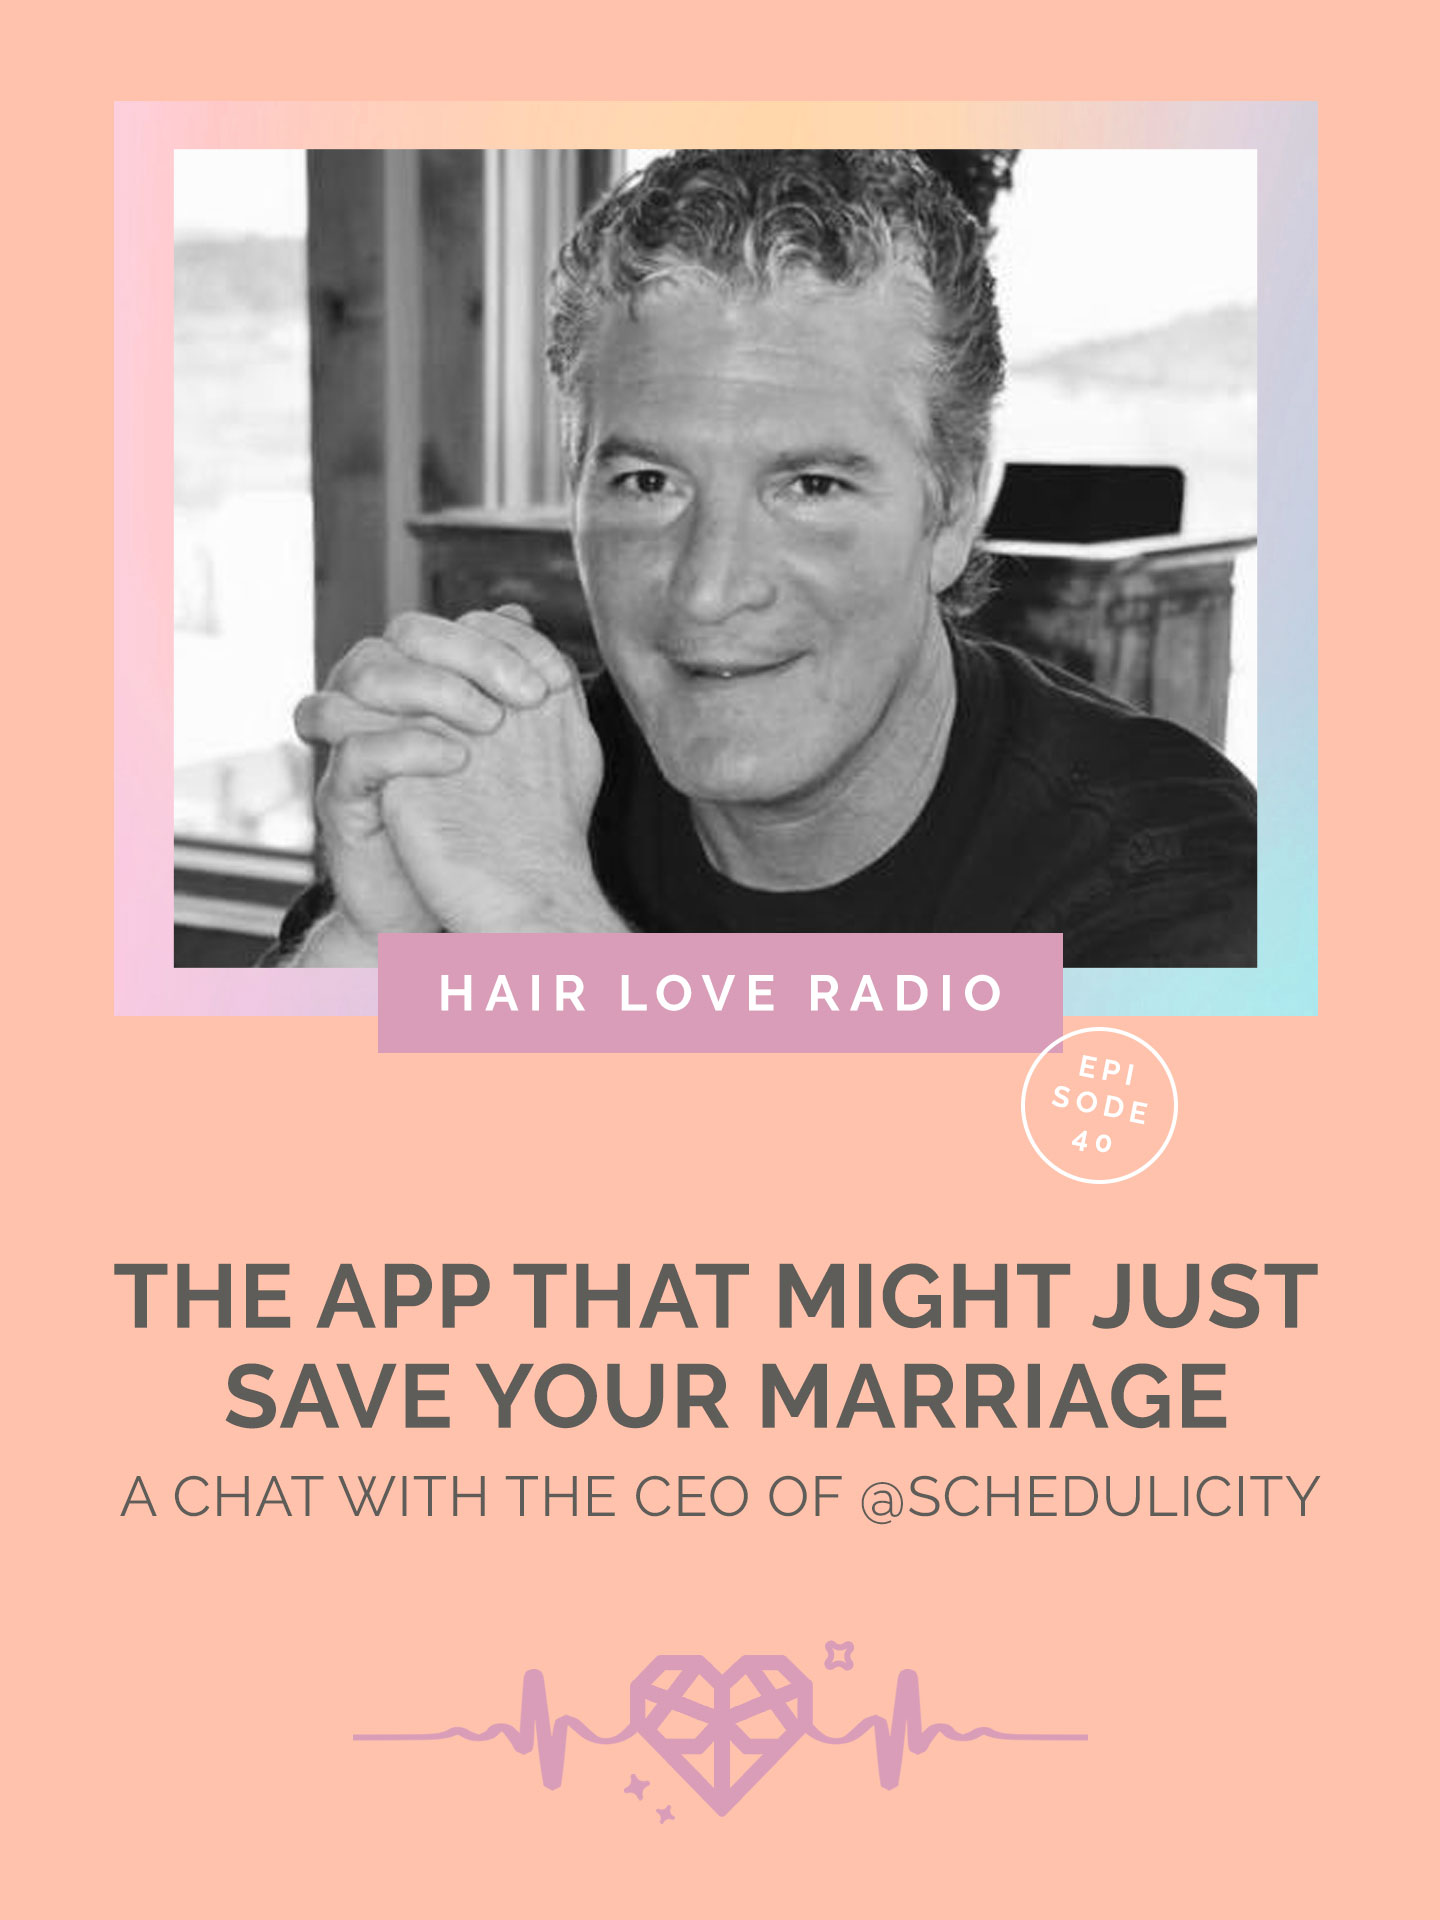 Episode 40: The App That Might Just Save Your Marriage — Hair Love